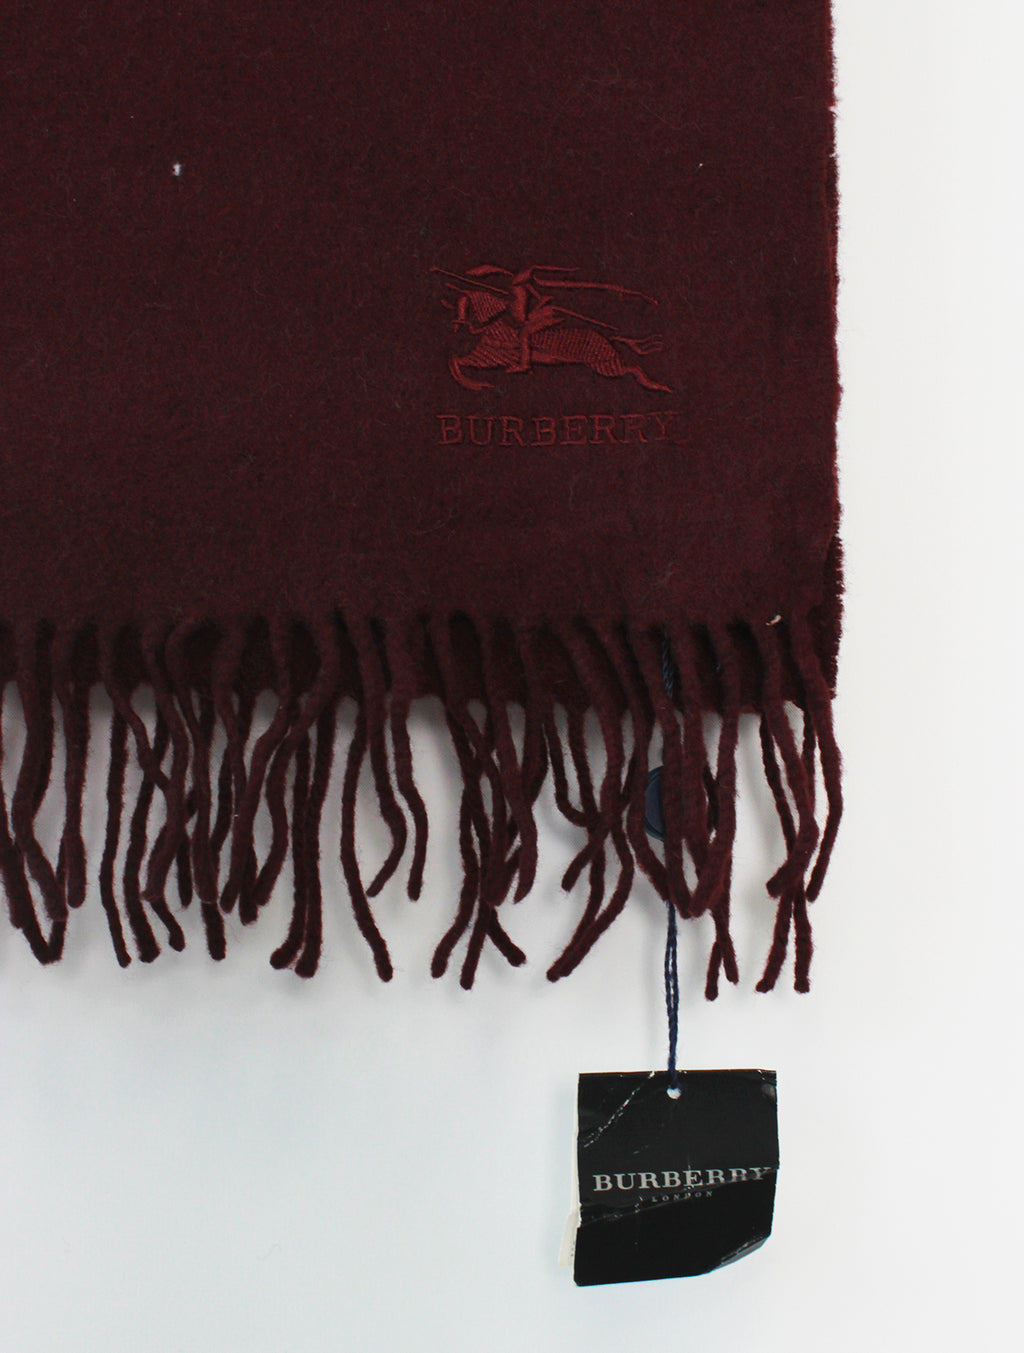 Burberry Scarf BNWT Lambswool Burgundy